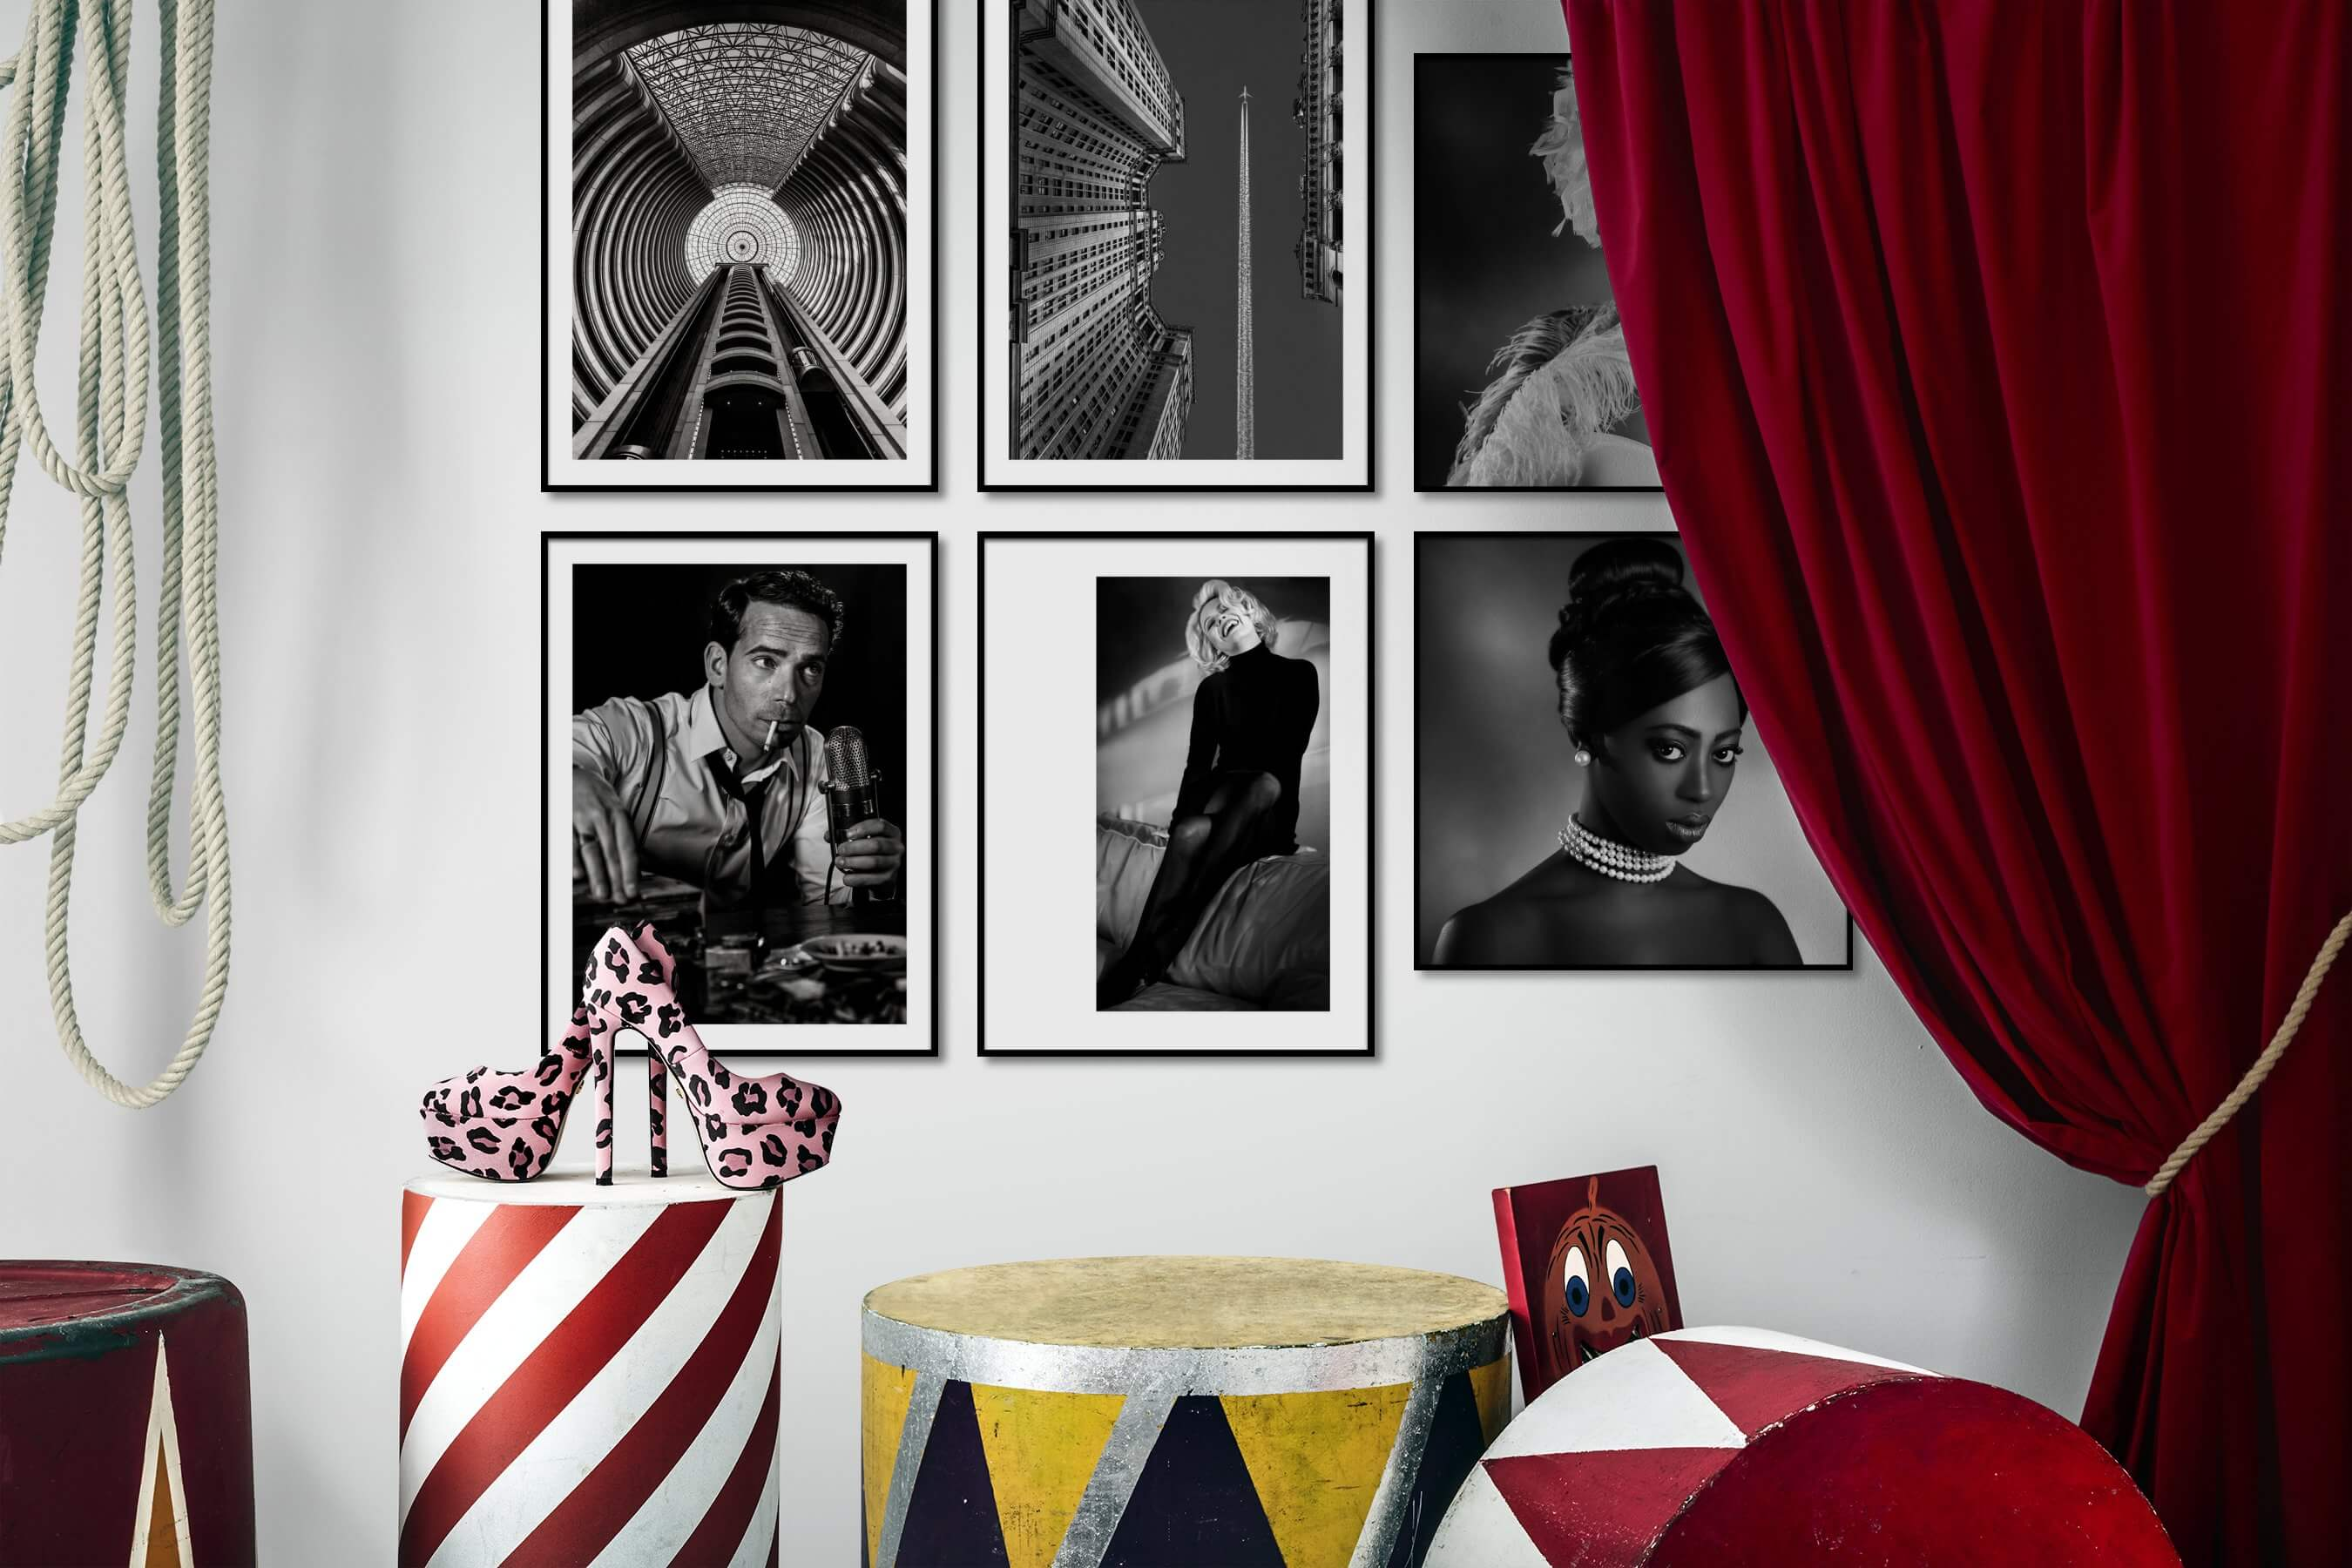 Gallery wall idea with six framed pictures arranged on a wall depicting Black & White, For the Maximalist, For the Moderate, City Life, Americana, Fashion & Beauty, and Vintage